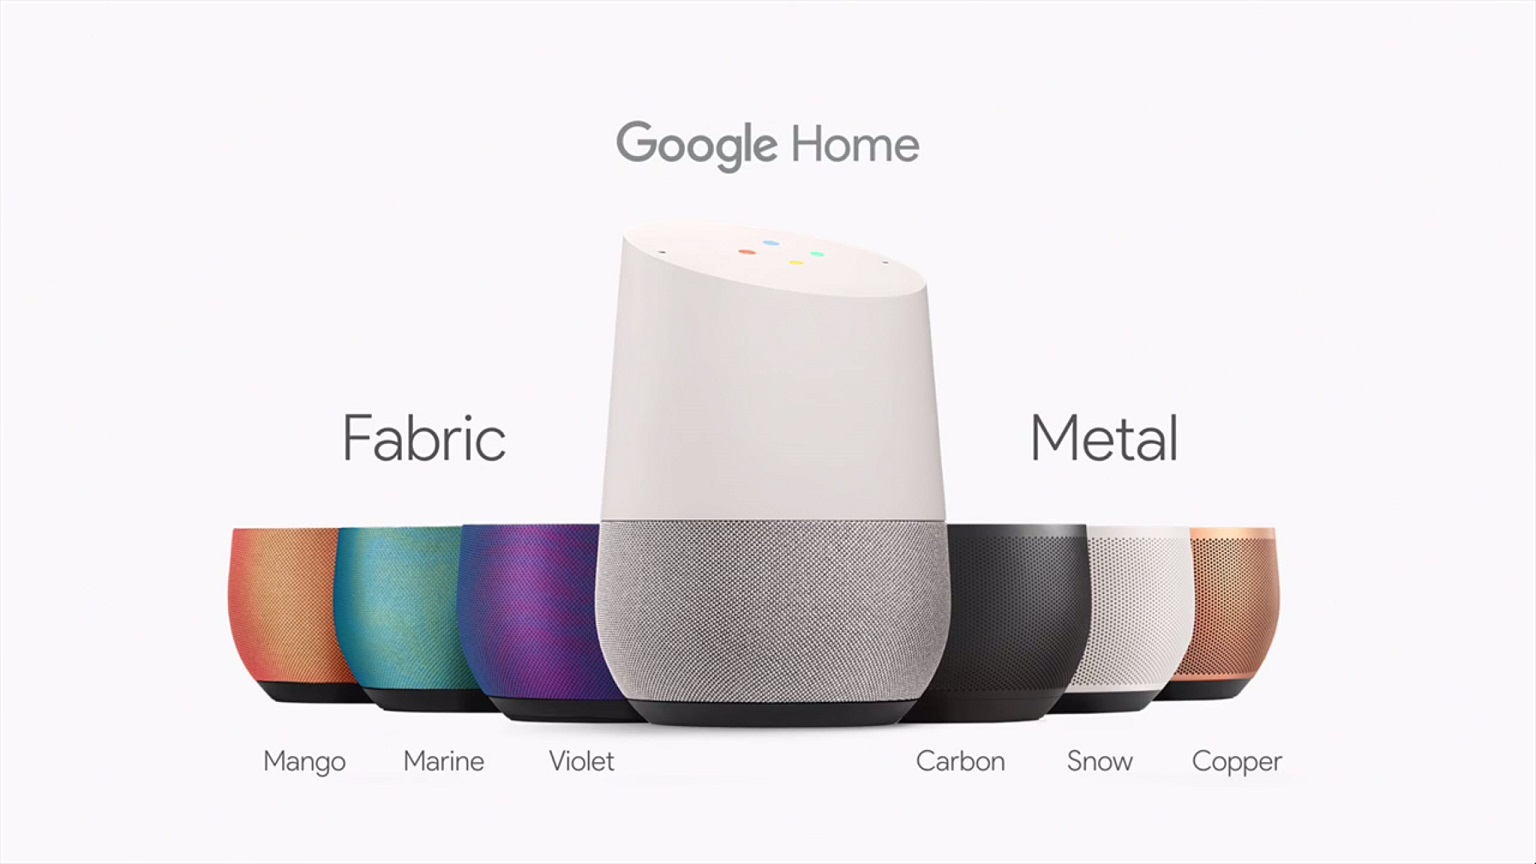 google home discounted to 99 for black friday custom pc review. Black Bedroom Furniture Sets. Home Design Ideas